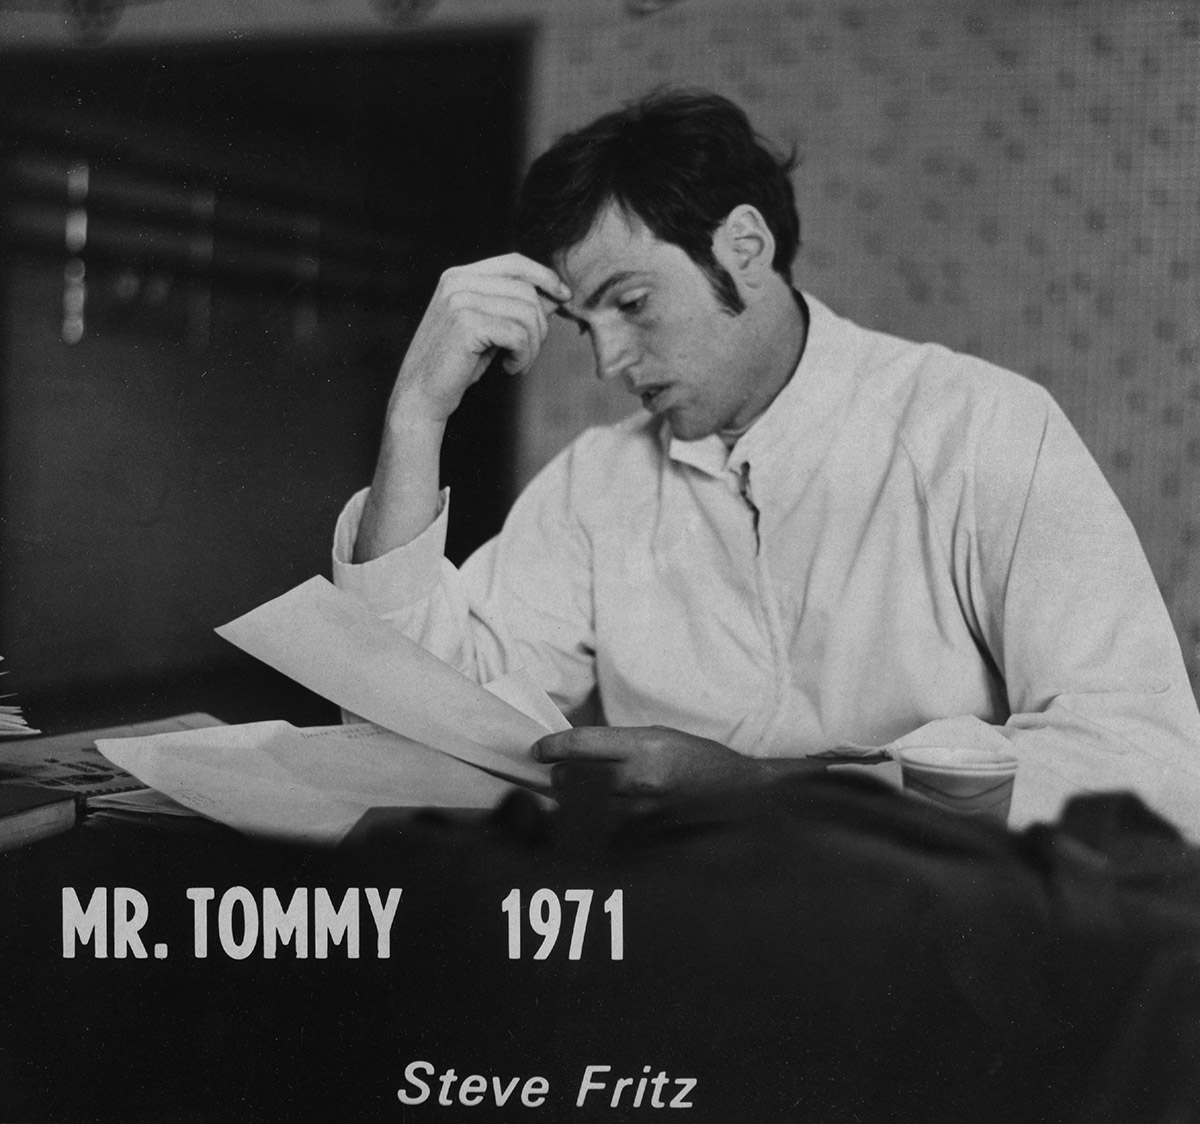 purple and gray st thomas newsroom fritz was d mr tommy in 1971